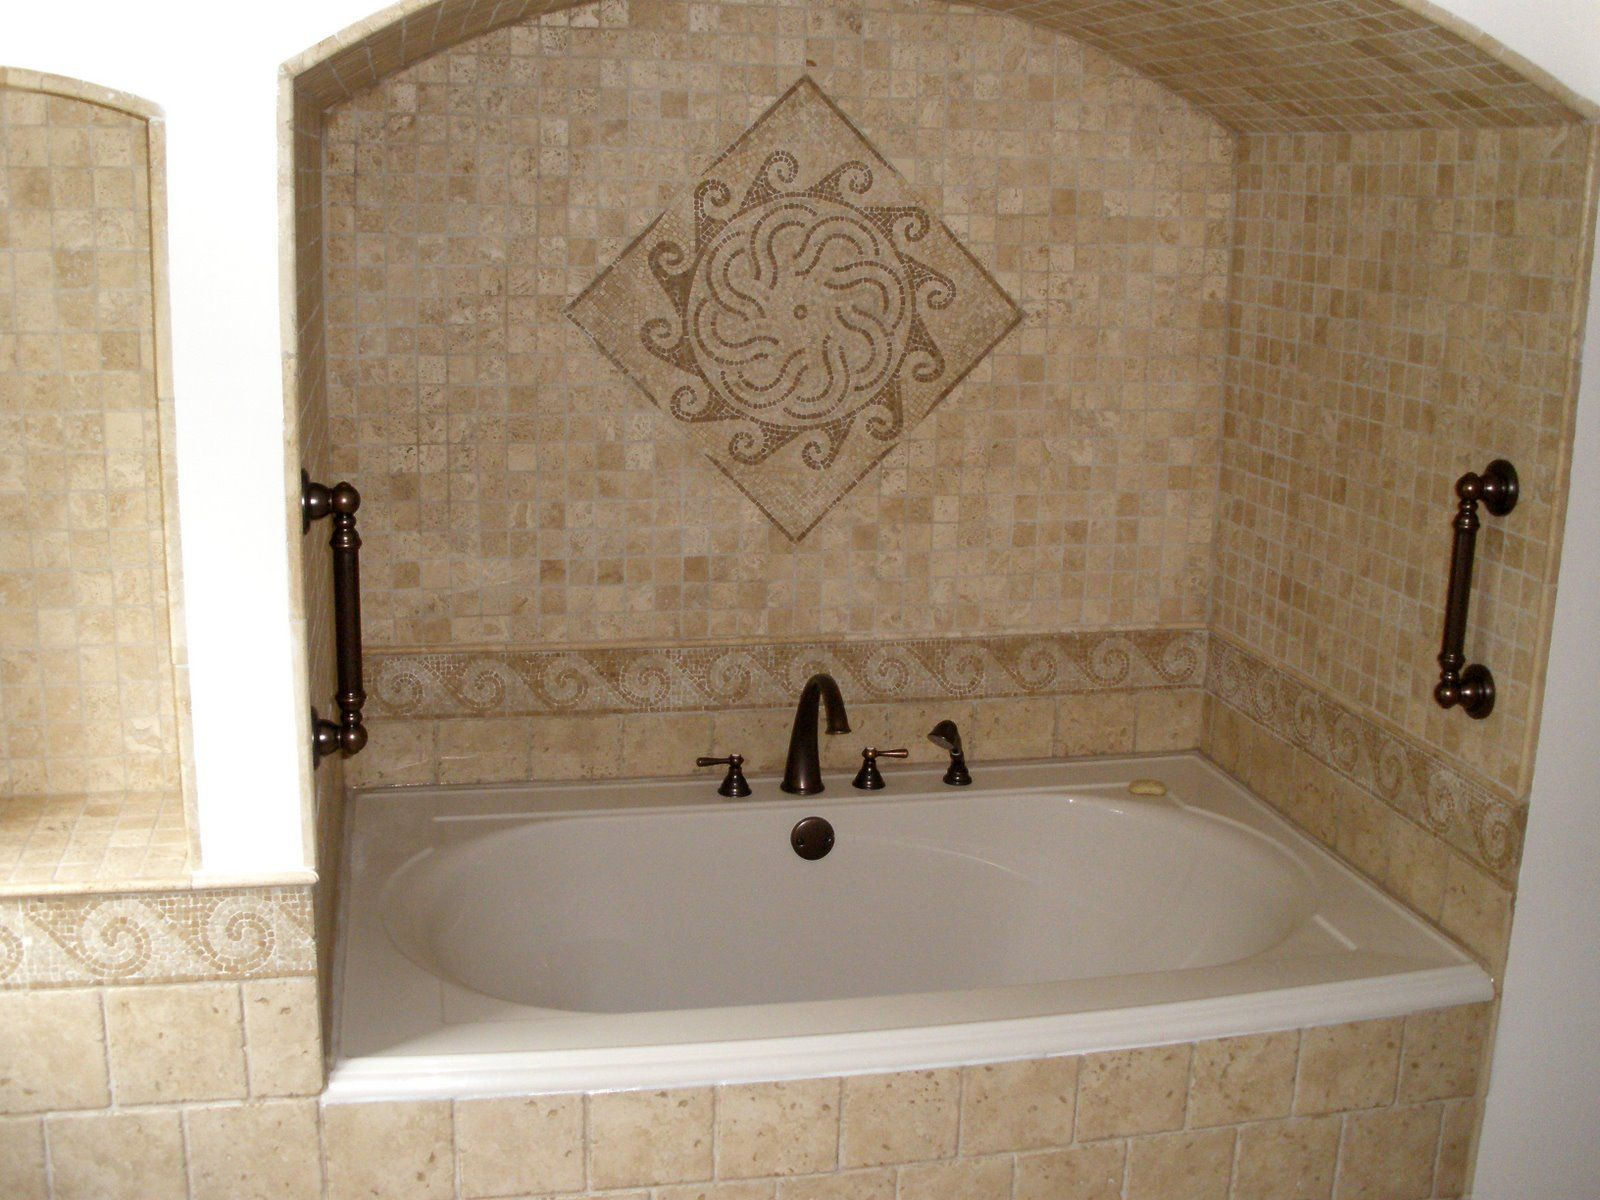 bathroom images of bathrooms shower patterns flooring glass tiles design ideas for options porcelain floor slate bath remodel designs tile small bathroom - Bathroom Remodel Design Ideas